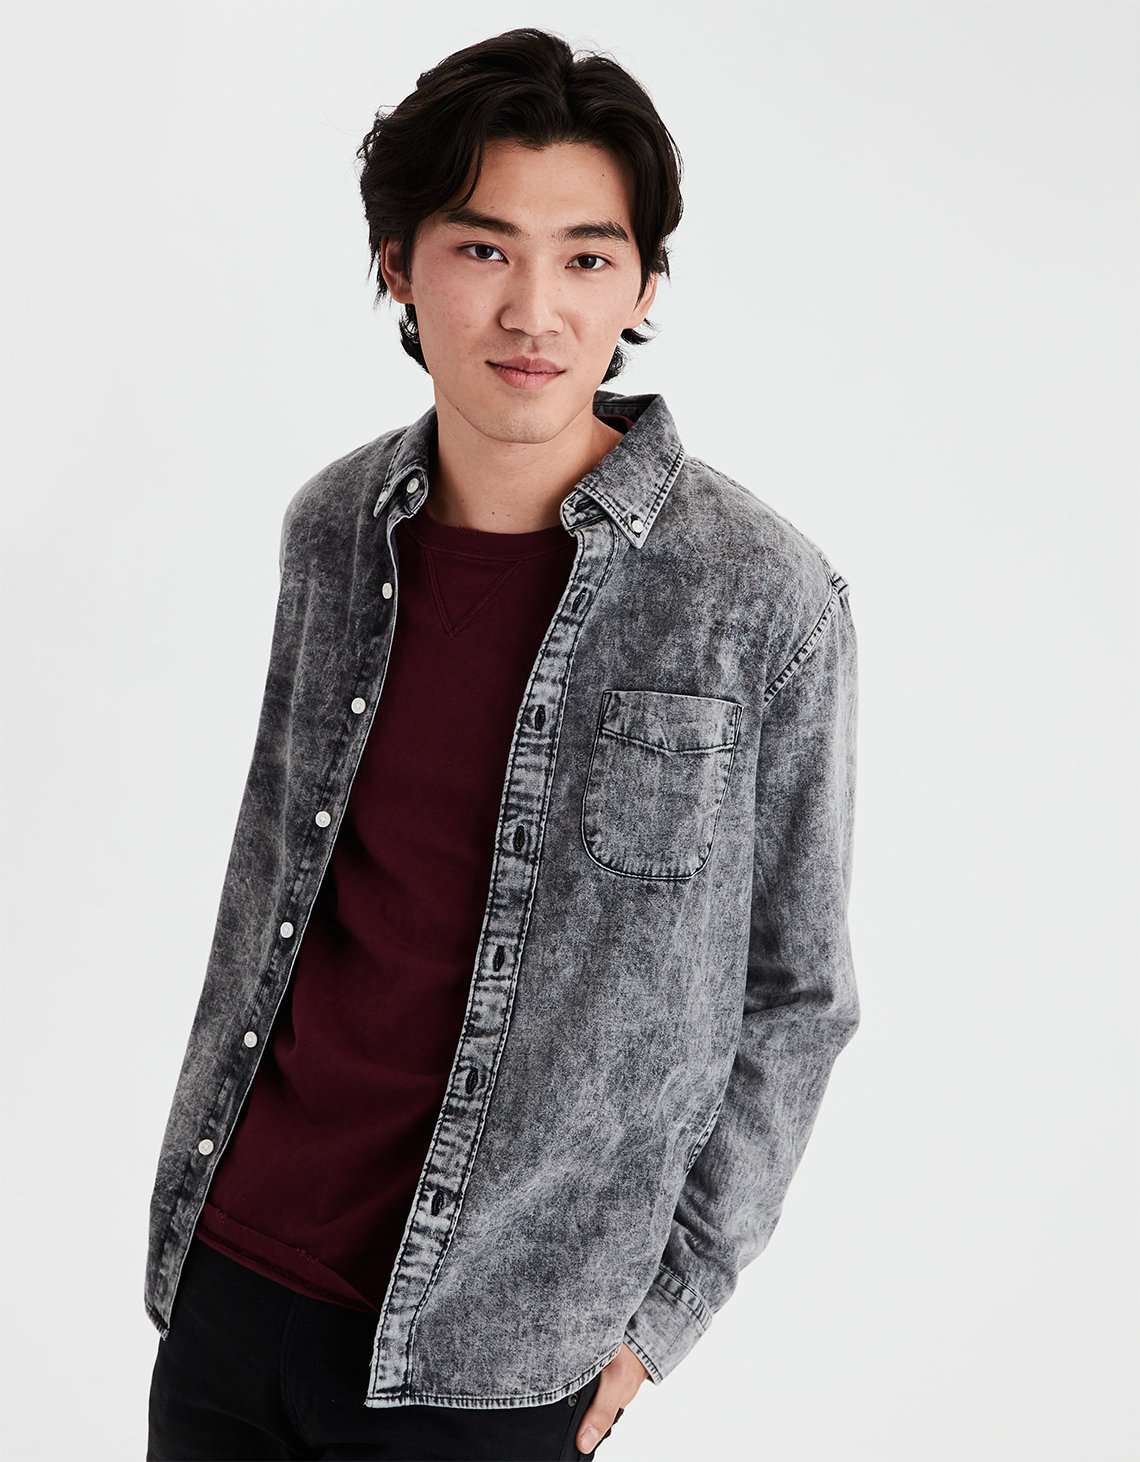 00422cb35cd AE Long Sleeve Black Acid Wash Denim Button Down Shirt. Placeholder image.  Product Image